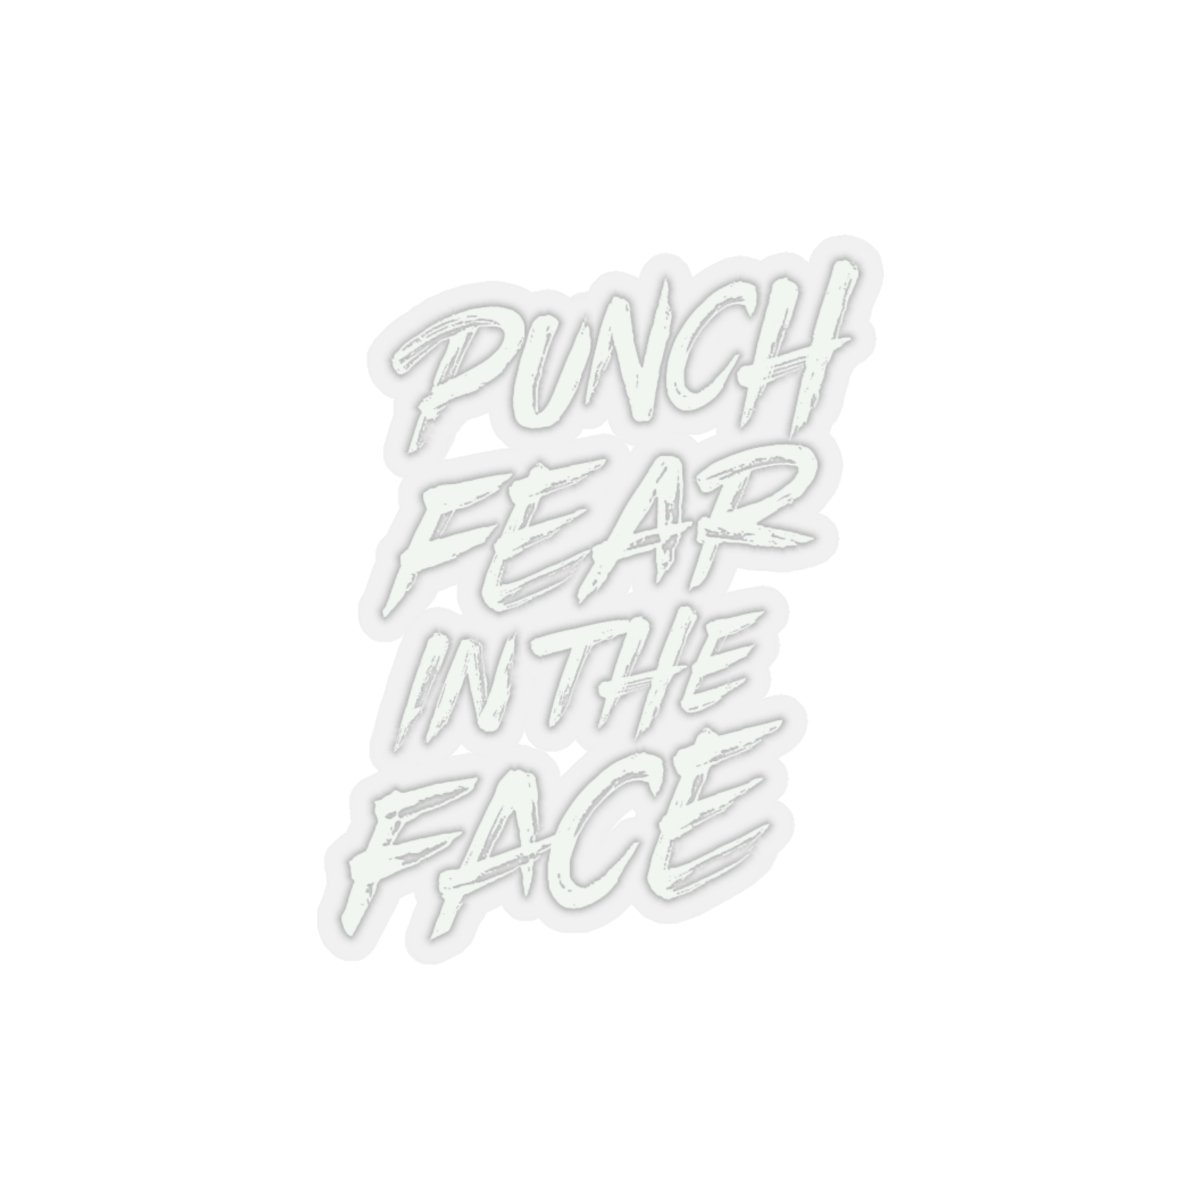 "Punch Fear in the Face - Kiss-Cut Stickers Stickers Printify 4x4"" Transparent"